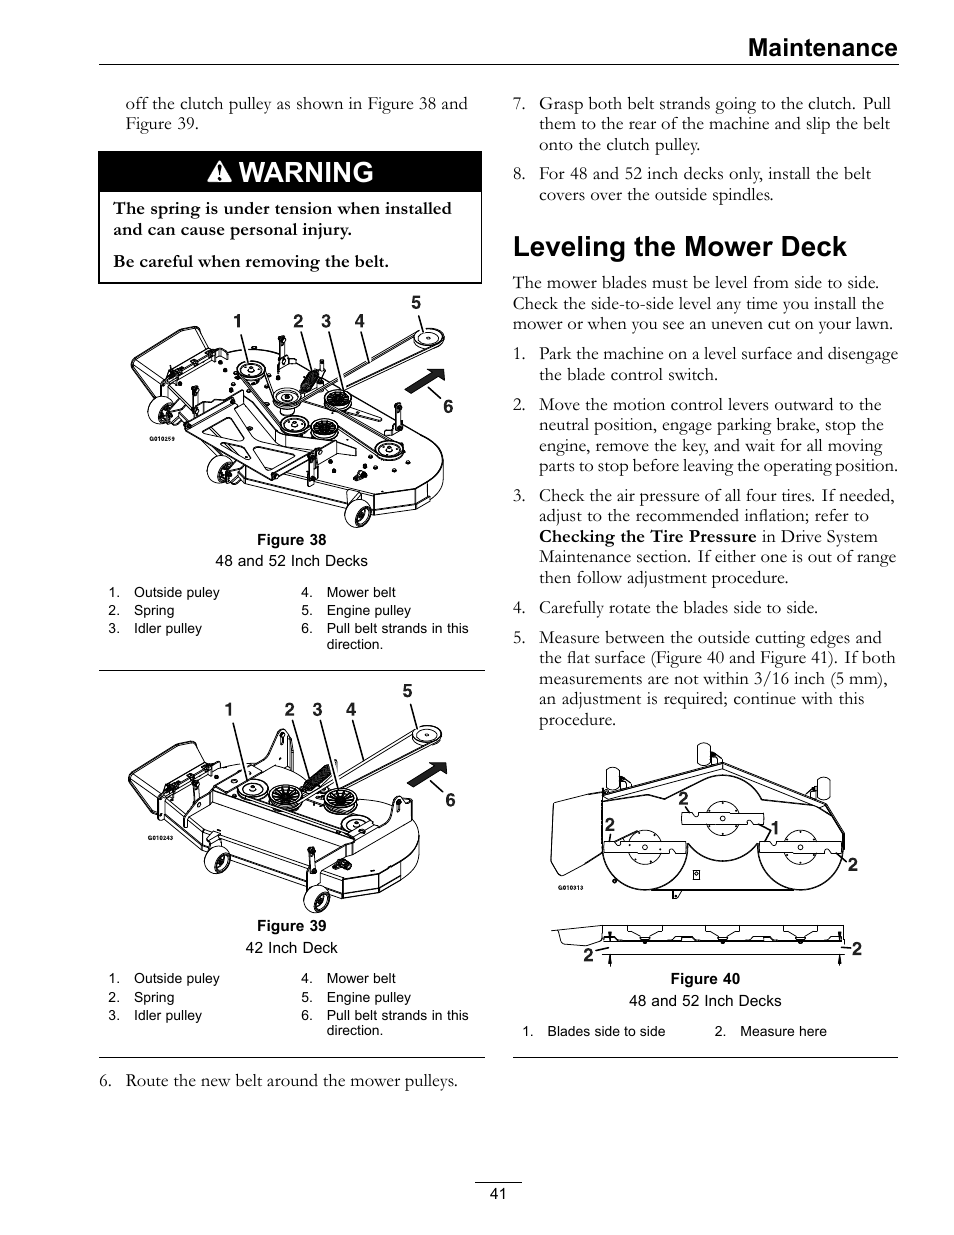 hight resolution of leveling the mower deck warning maintenance exmark quest 4500 450 user manual page 41 56